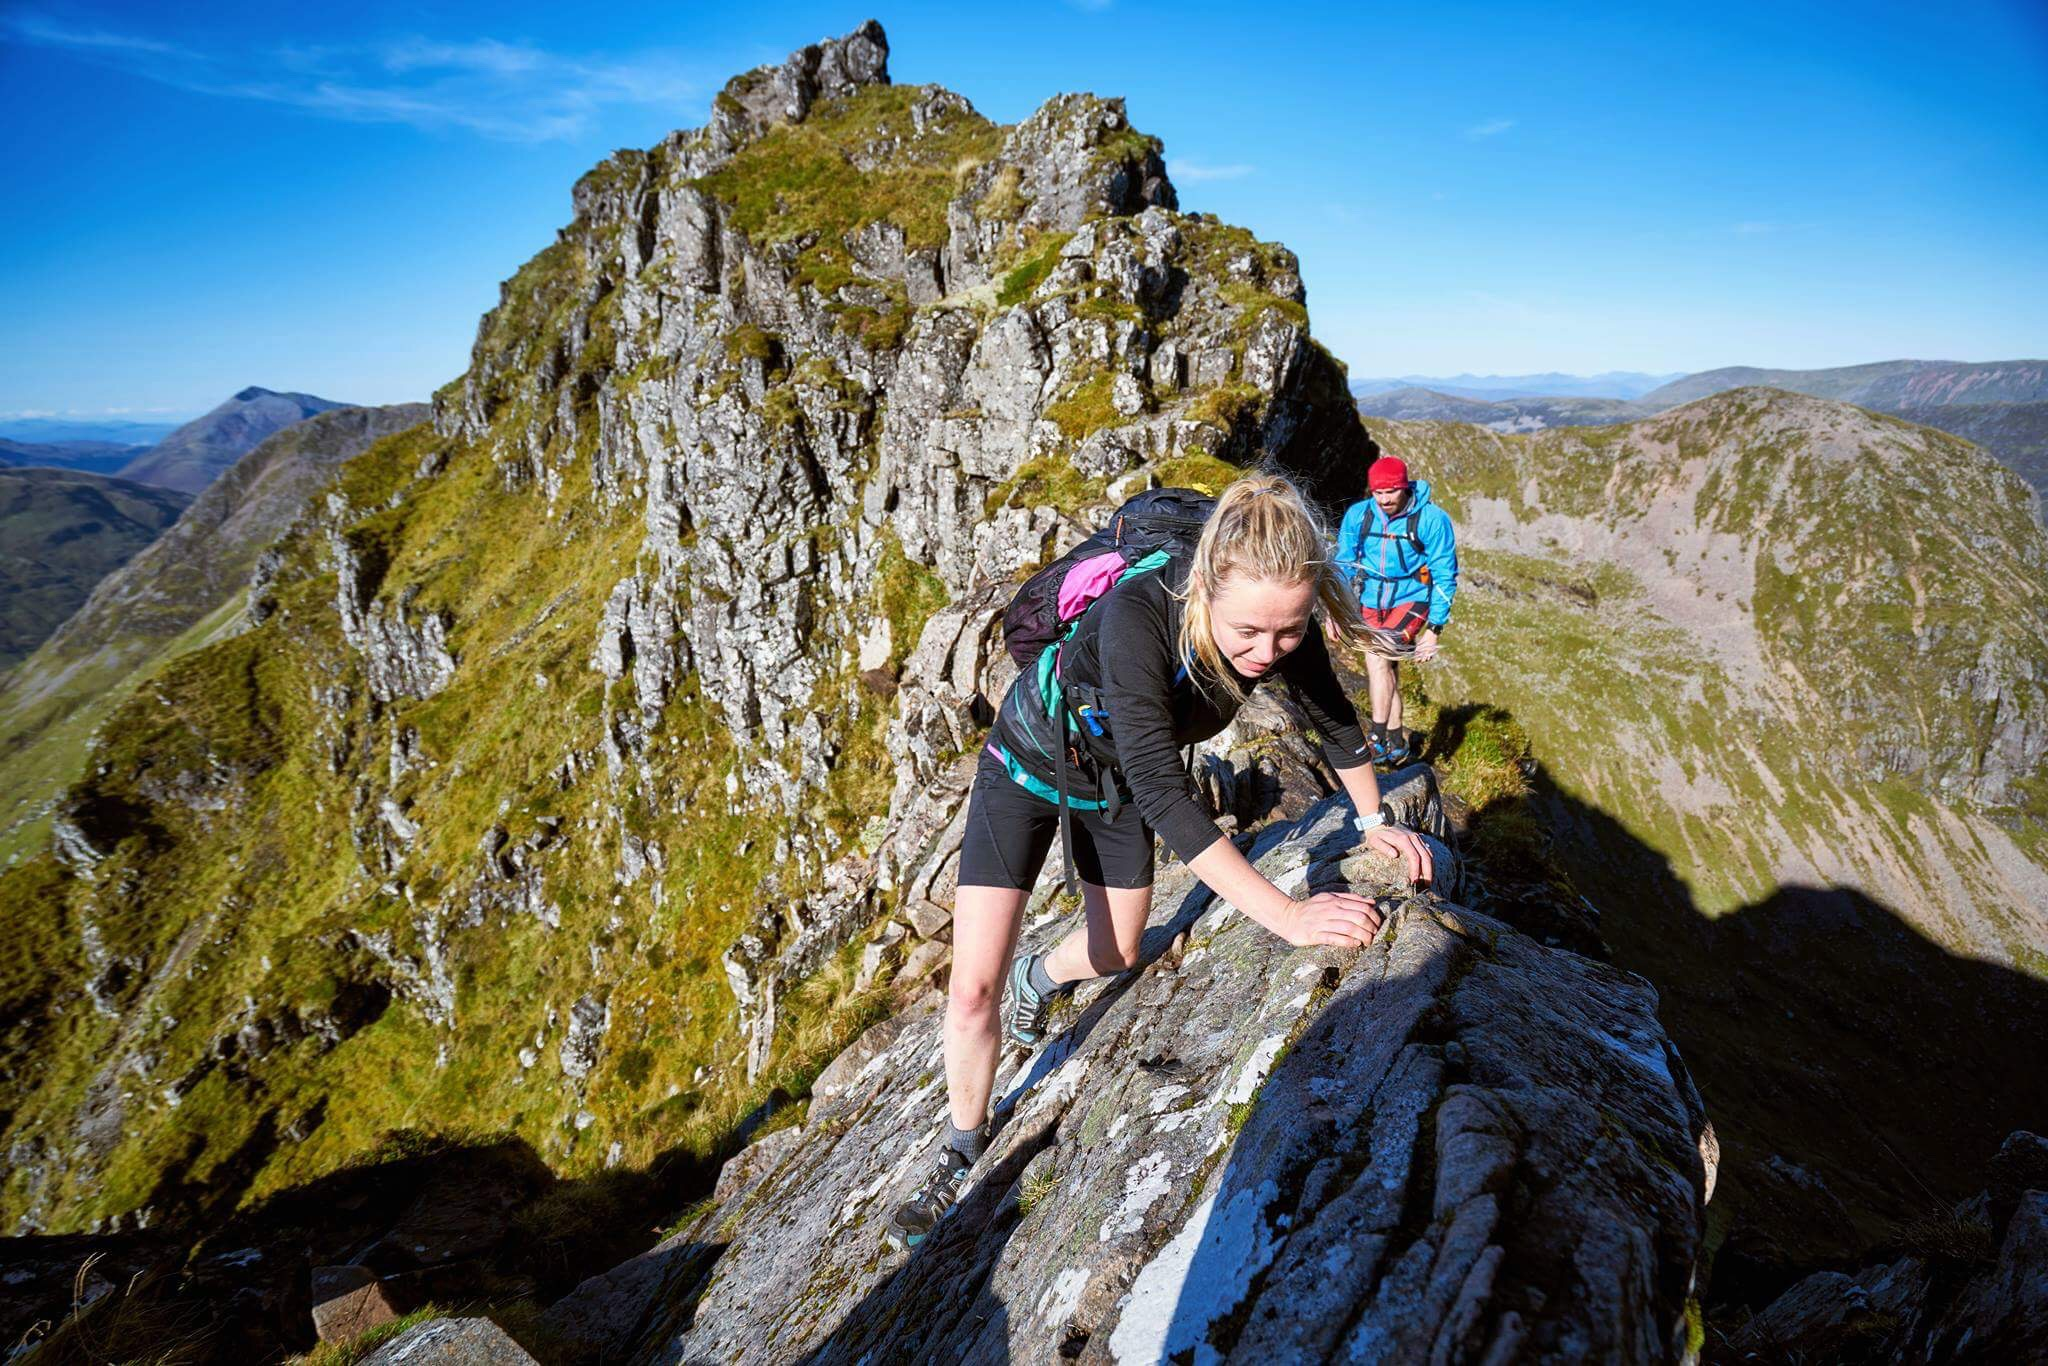 Iconic Scottish Munros - Inaccessible Pinnacle, Aonach Eagach Ridge, Curved RidgeHazel and Luke climbed and scrambled up and along these rocky Munros. The